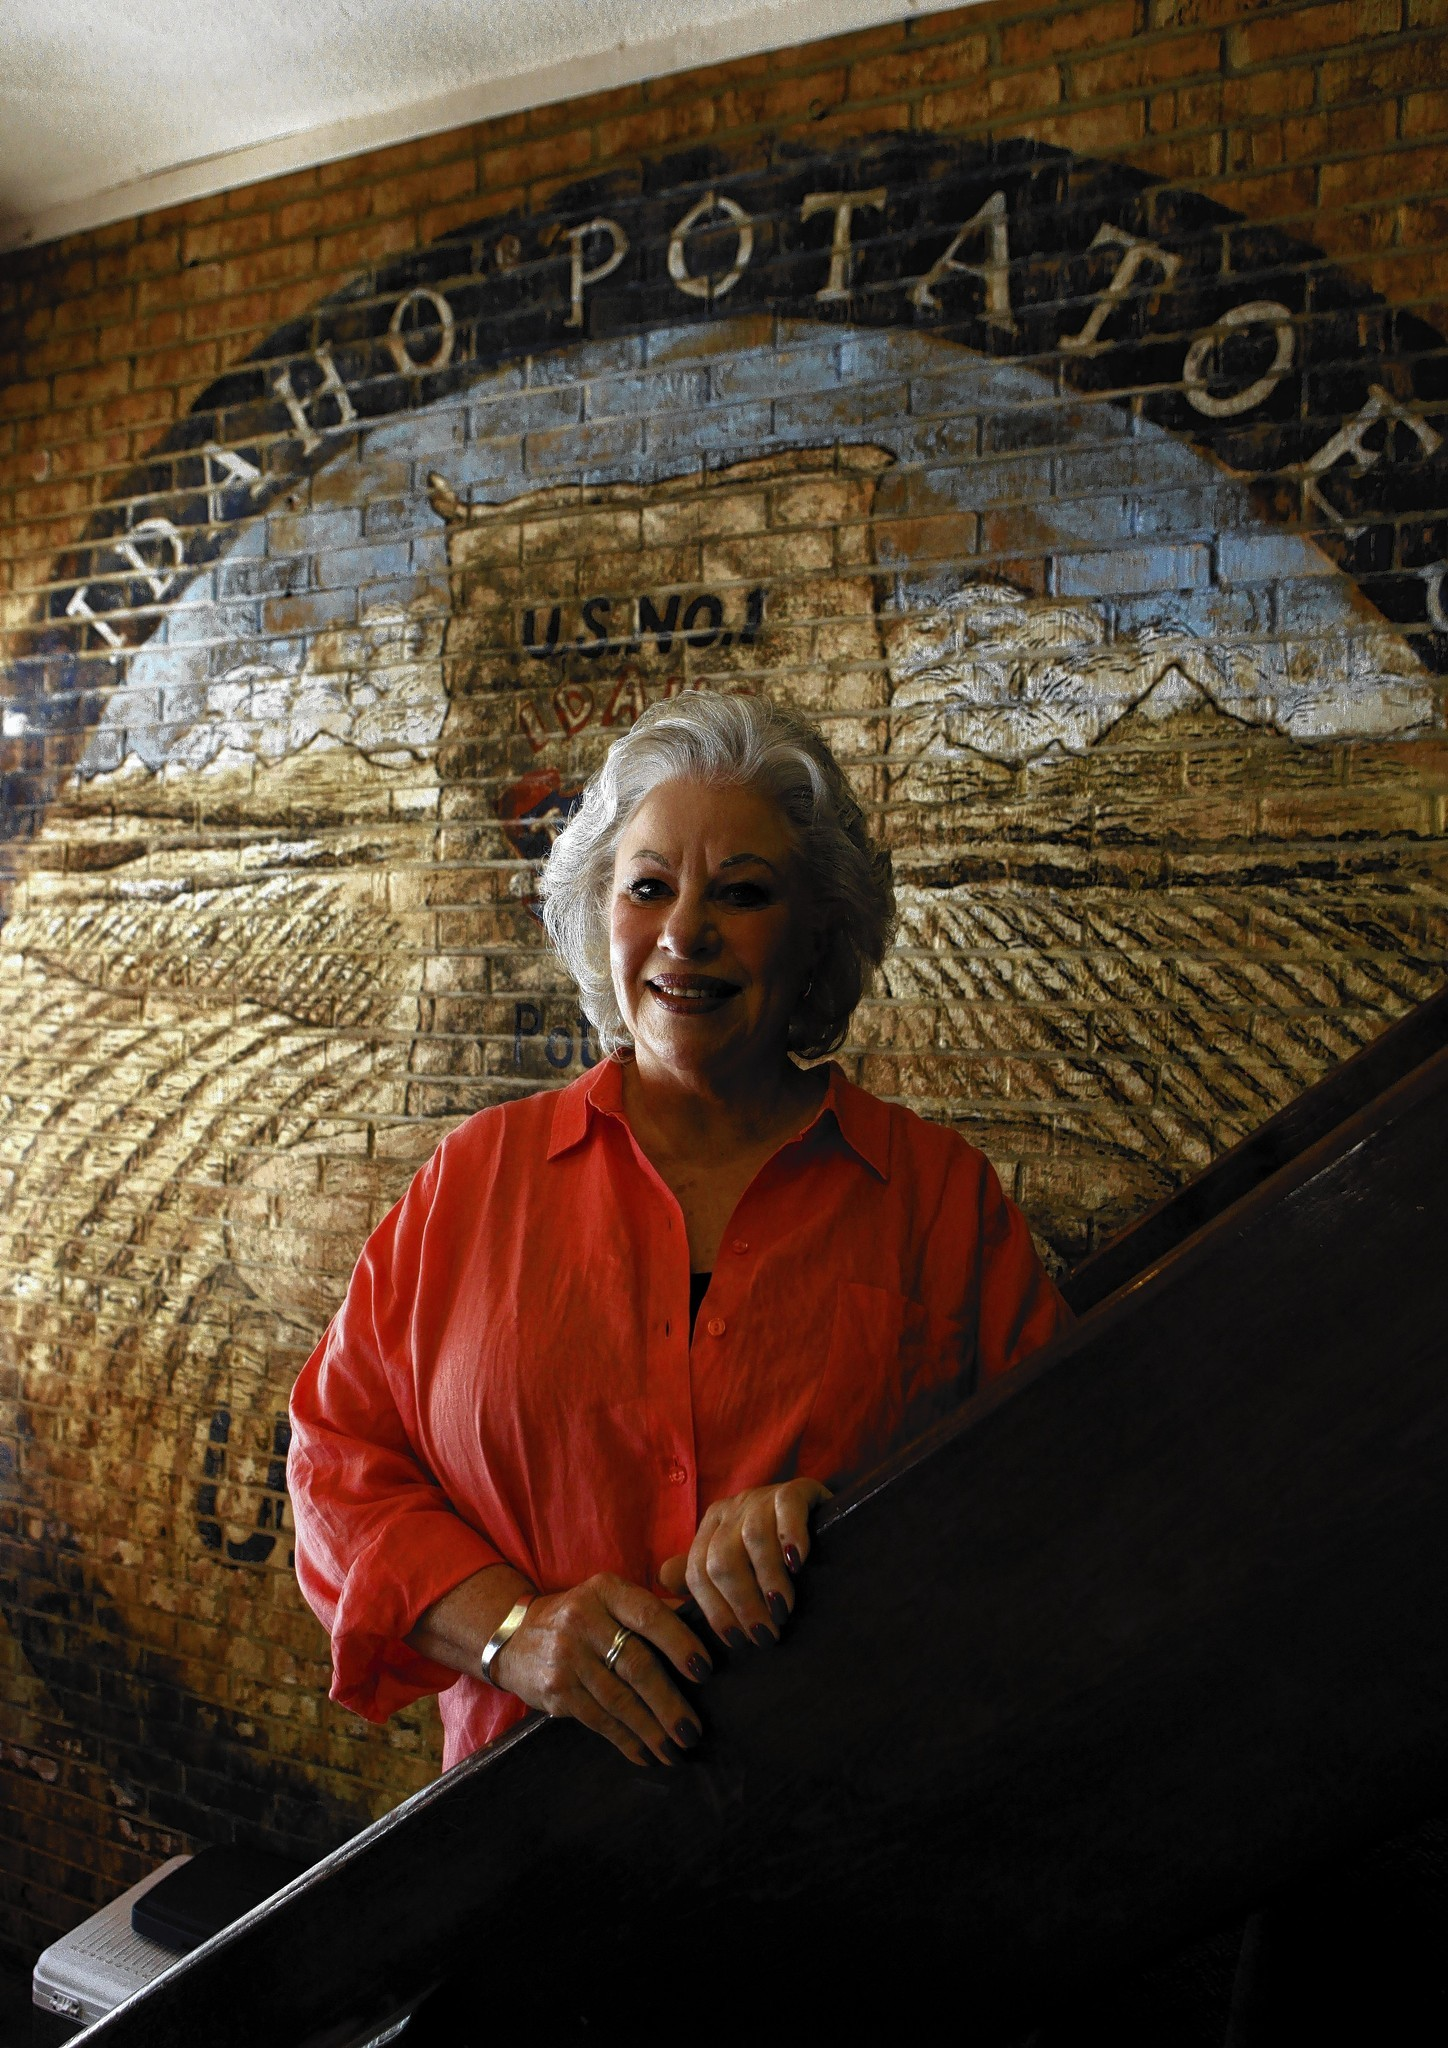 Ina Pinkney called it a career in 2013 after 33 years of feeding Chicago.